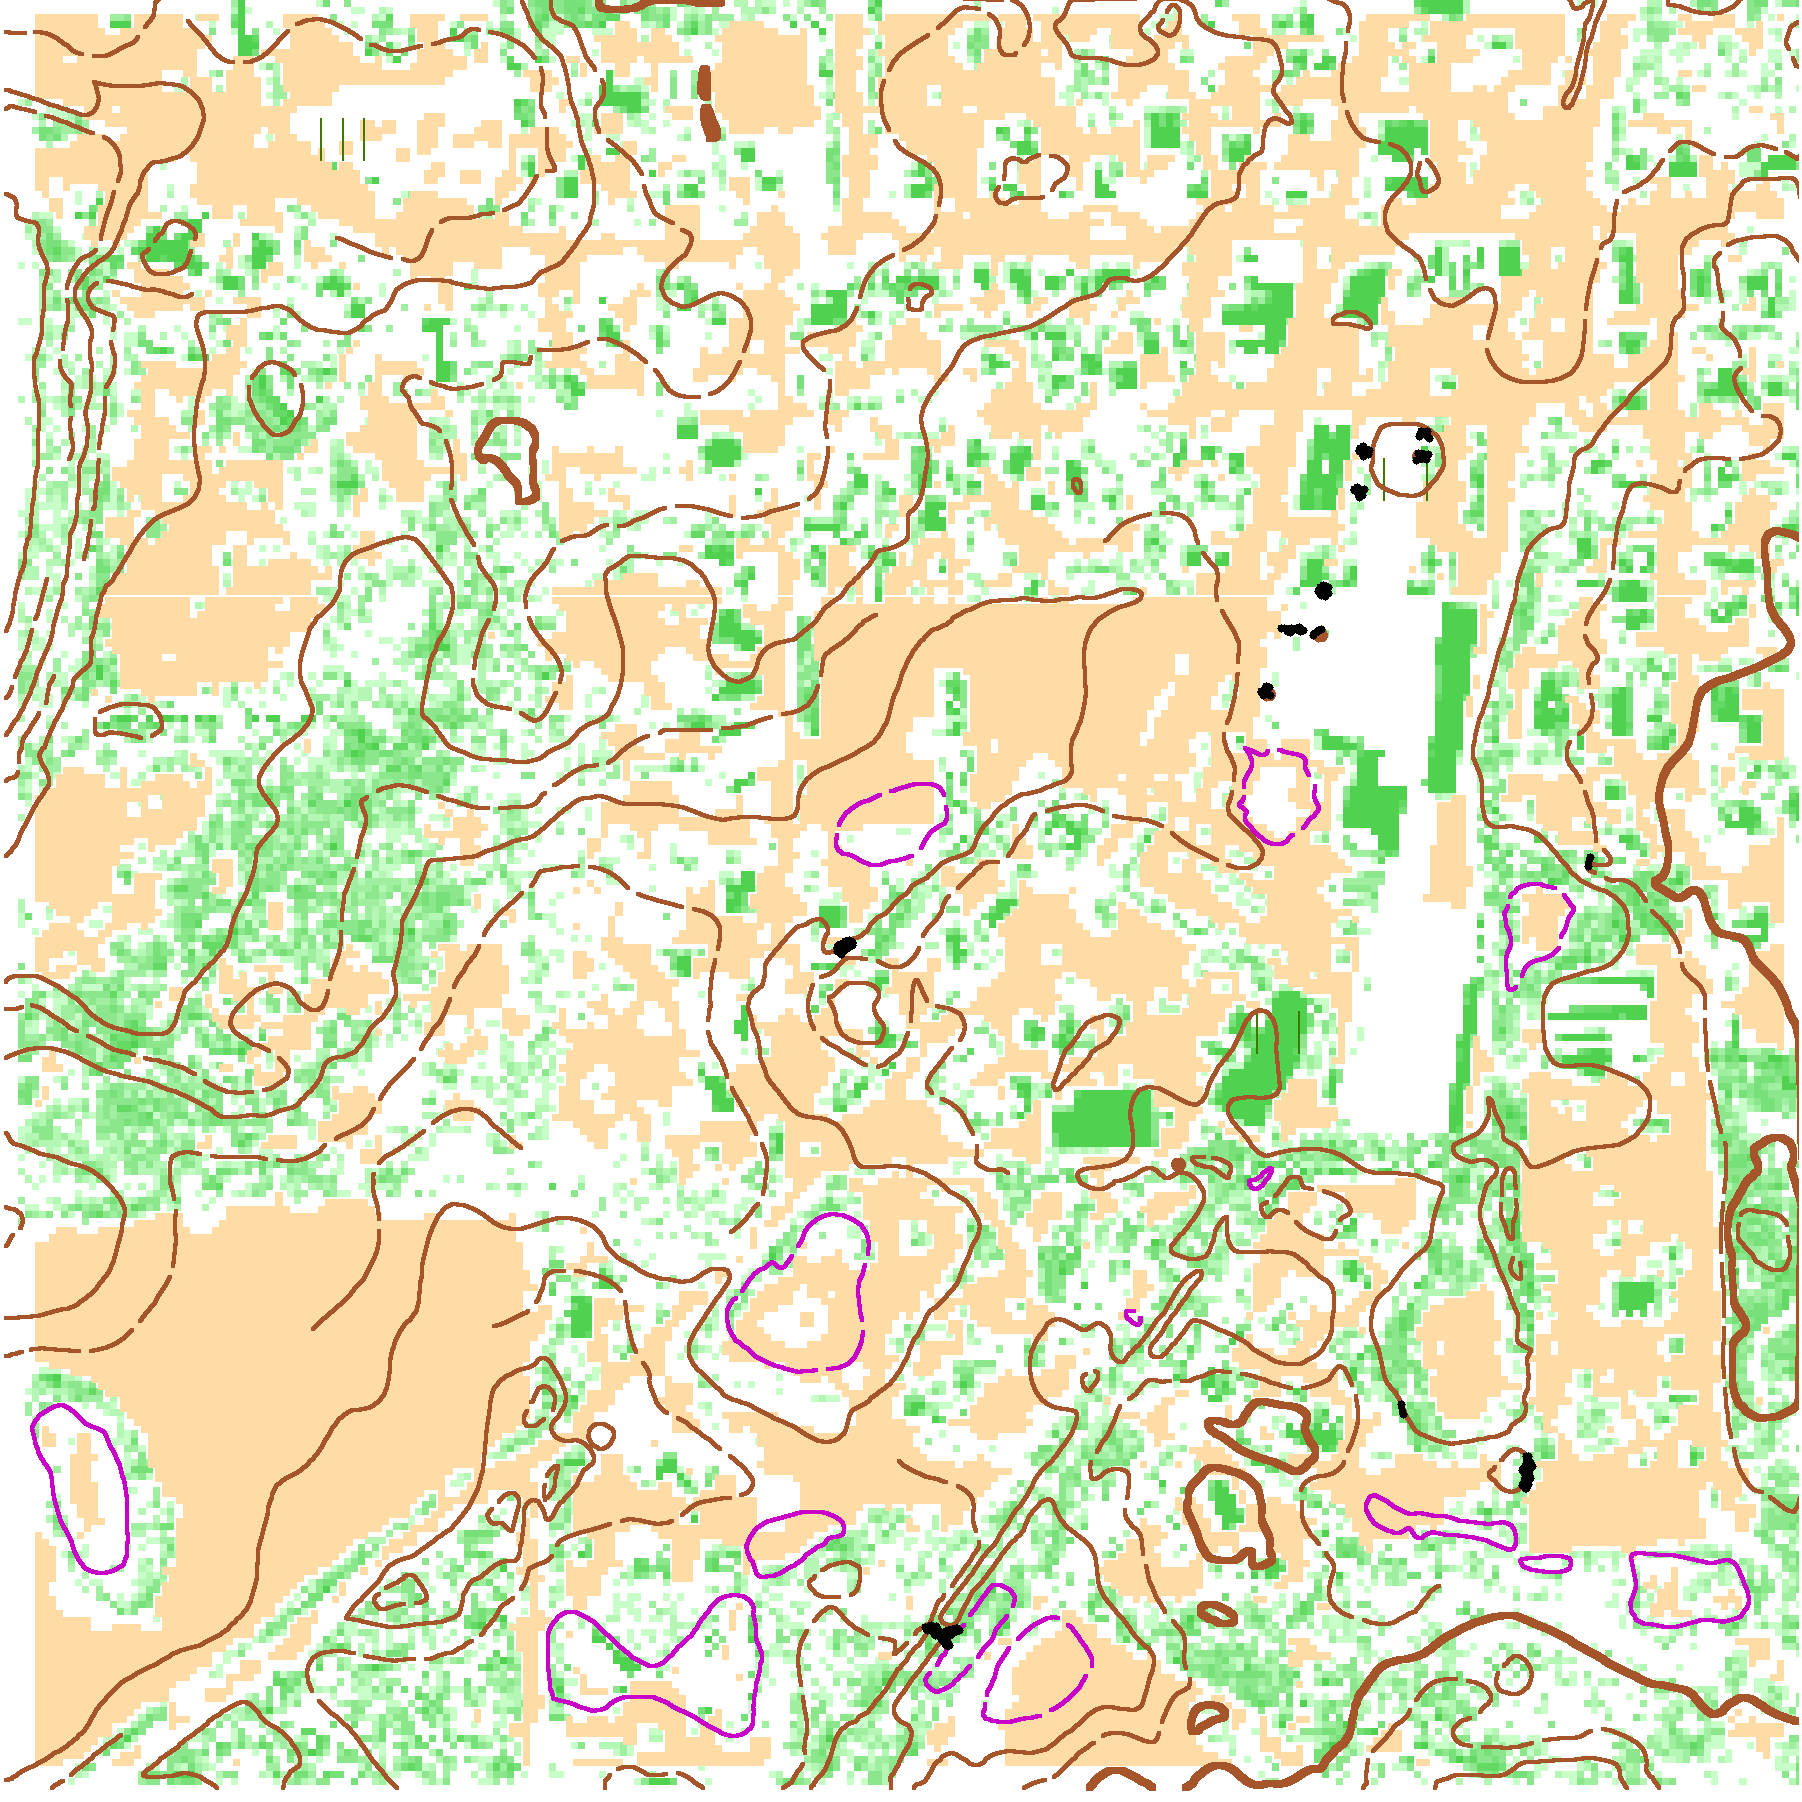 OCAD12 Issue - Attackpoint : Orienteering training, racing